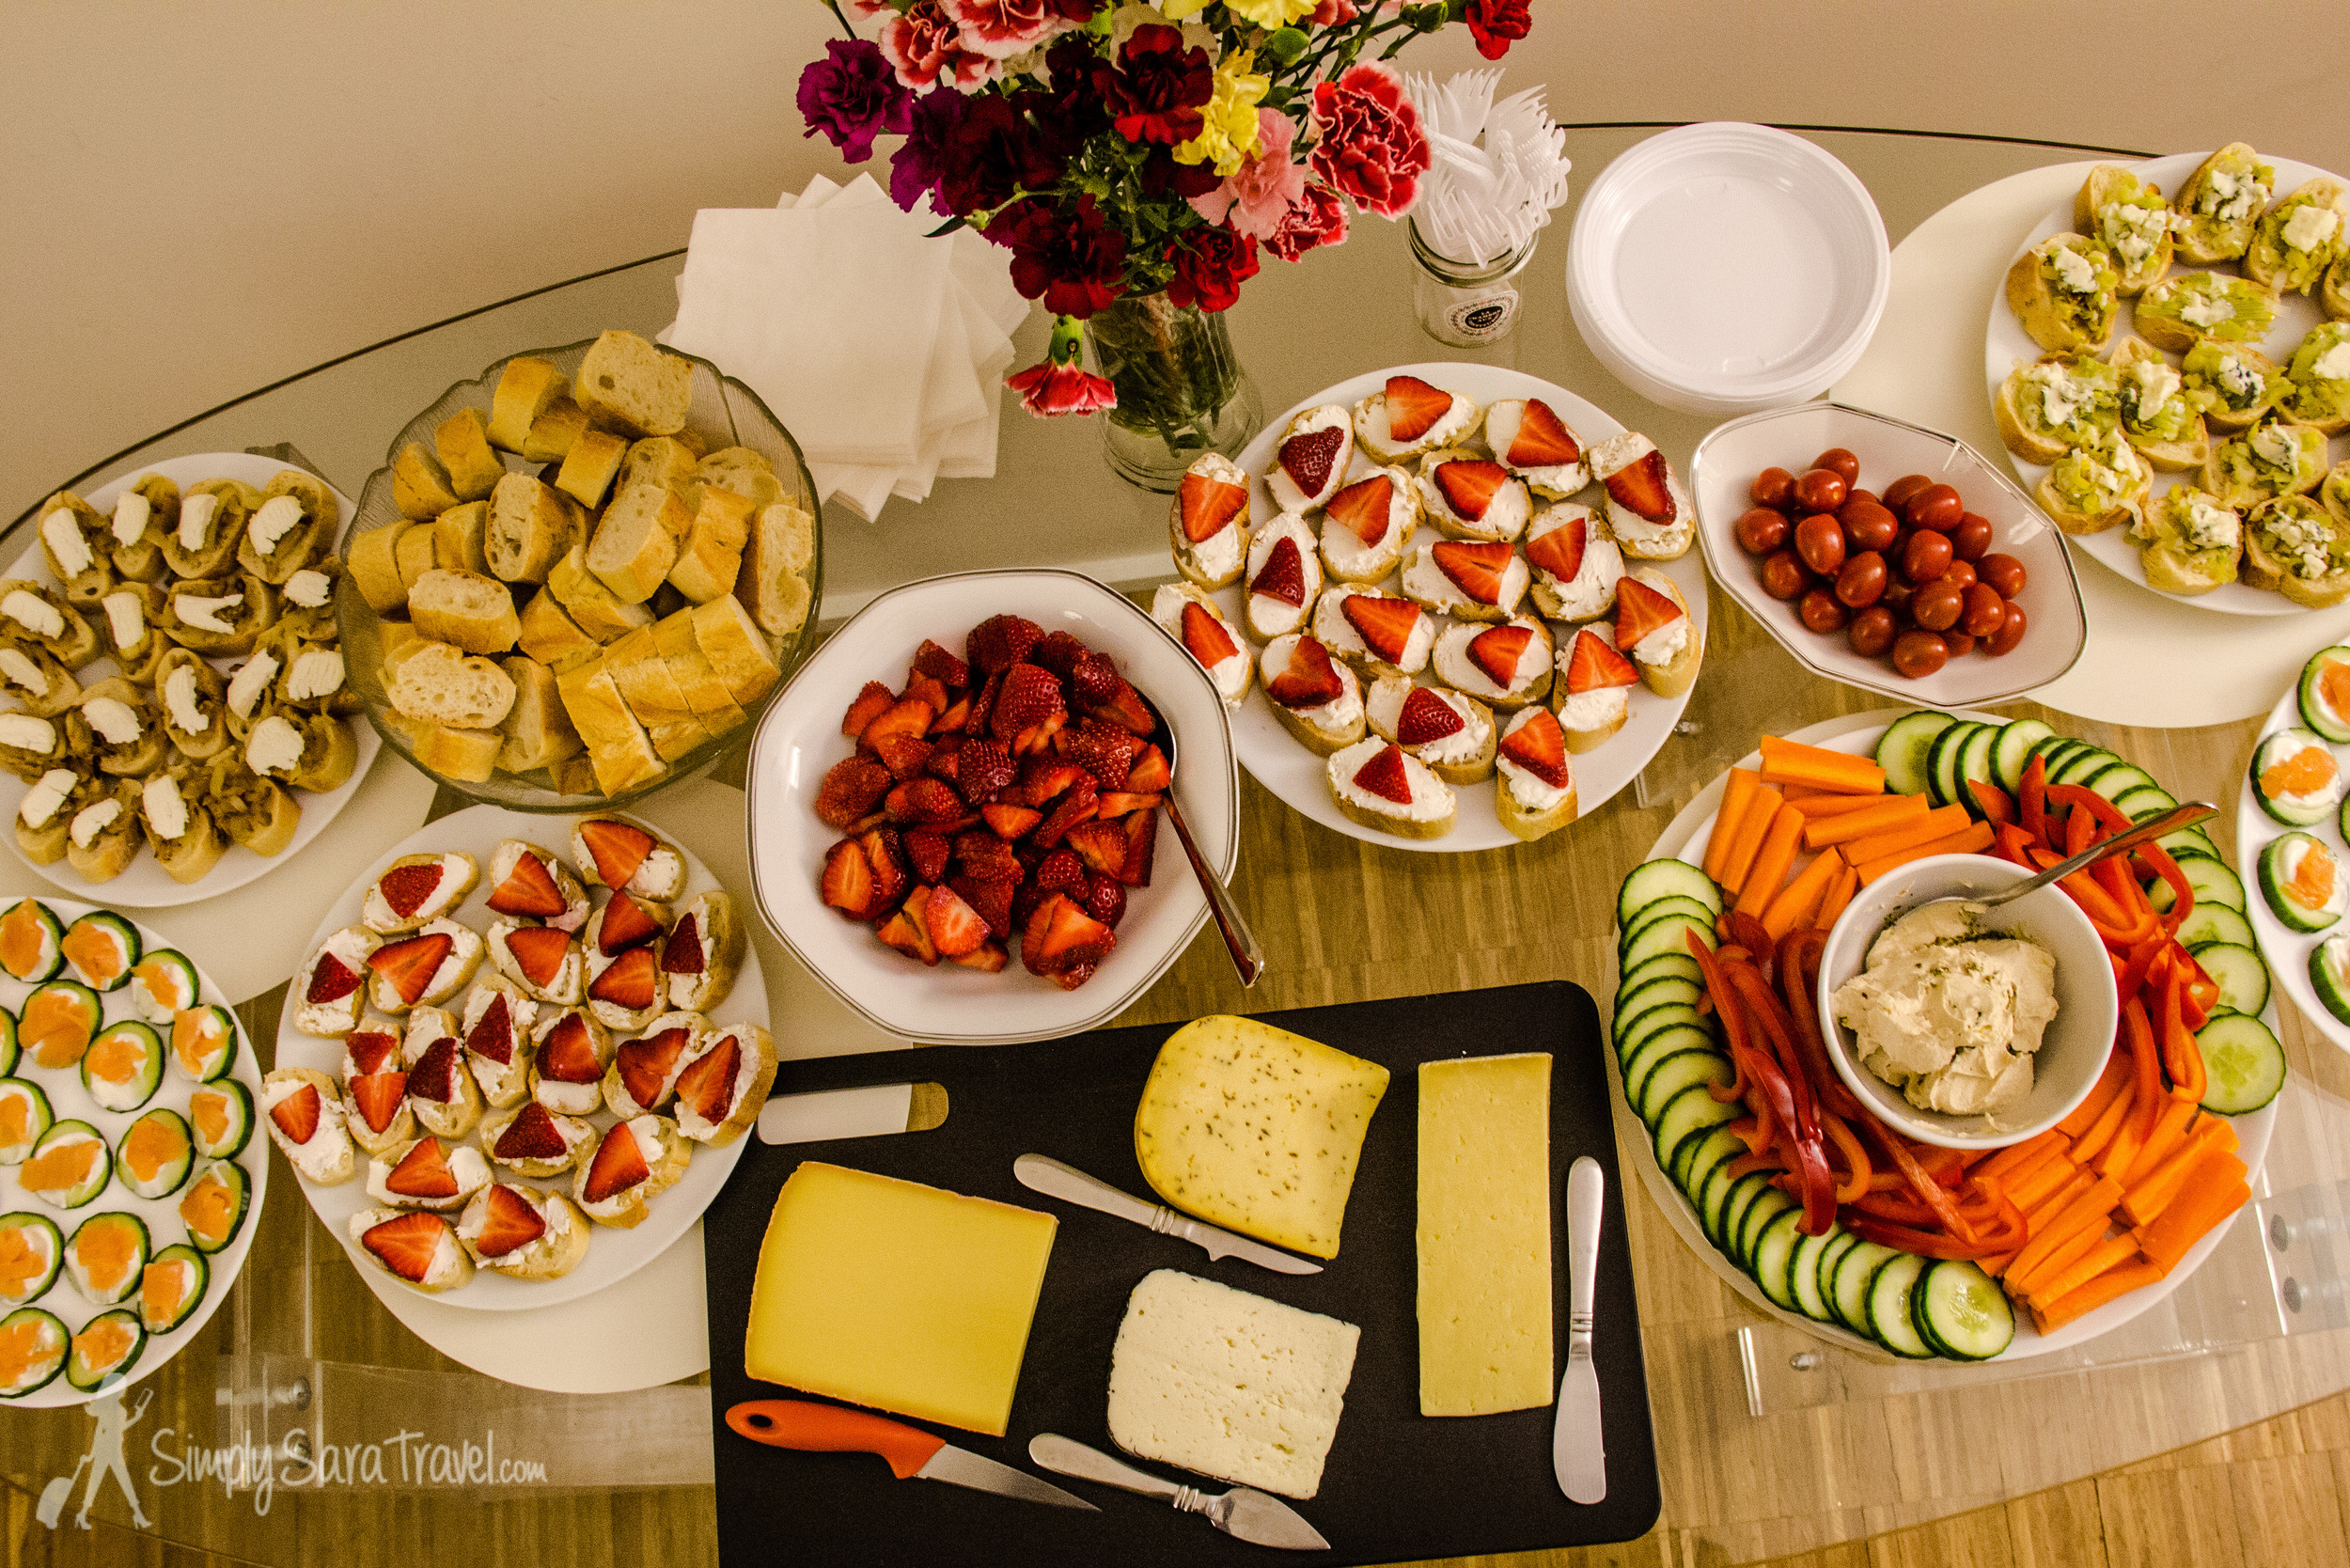 Part of the party spread...minus the late appearance of stuffed mushrooms and macarons